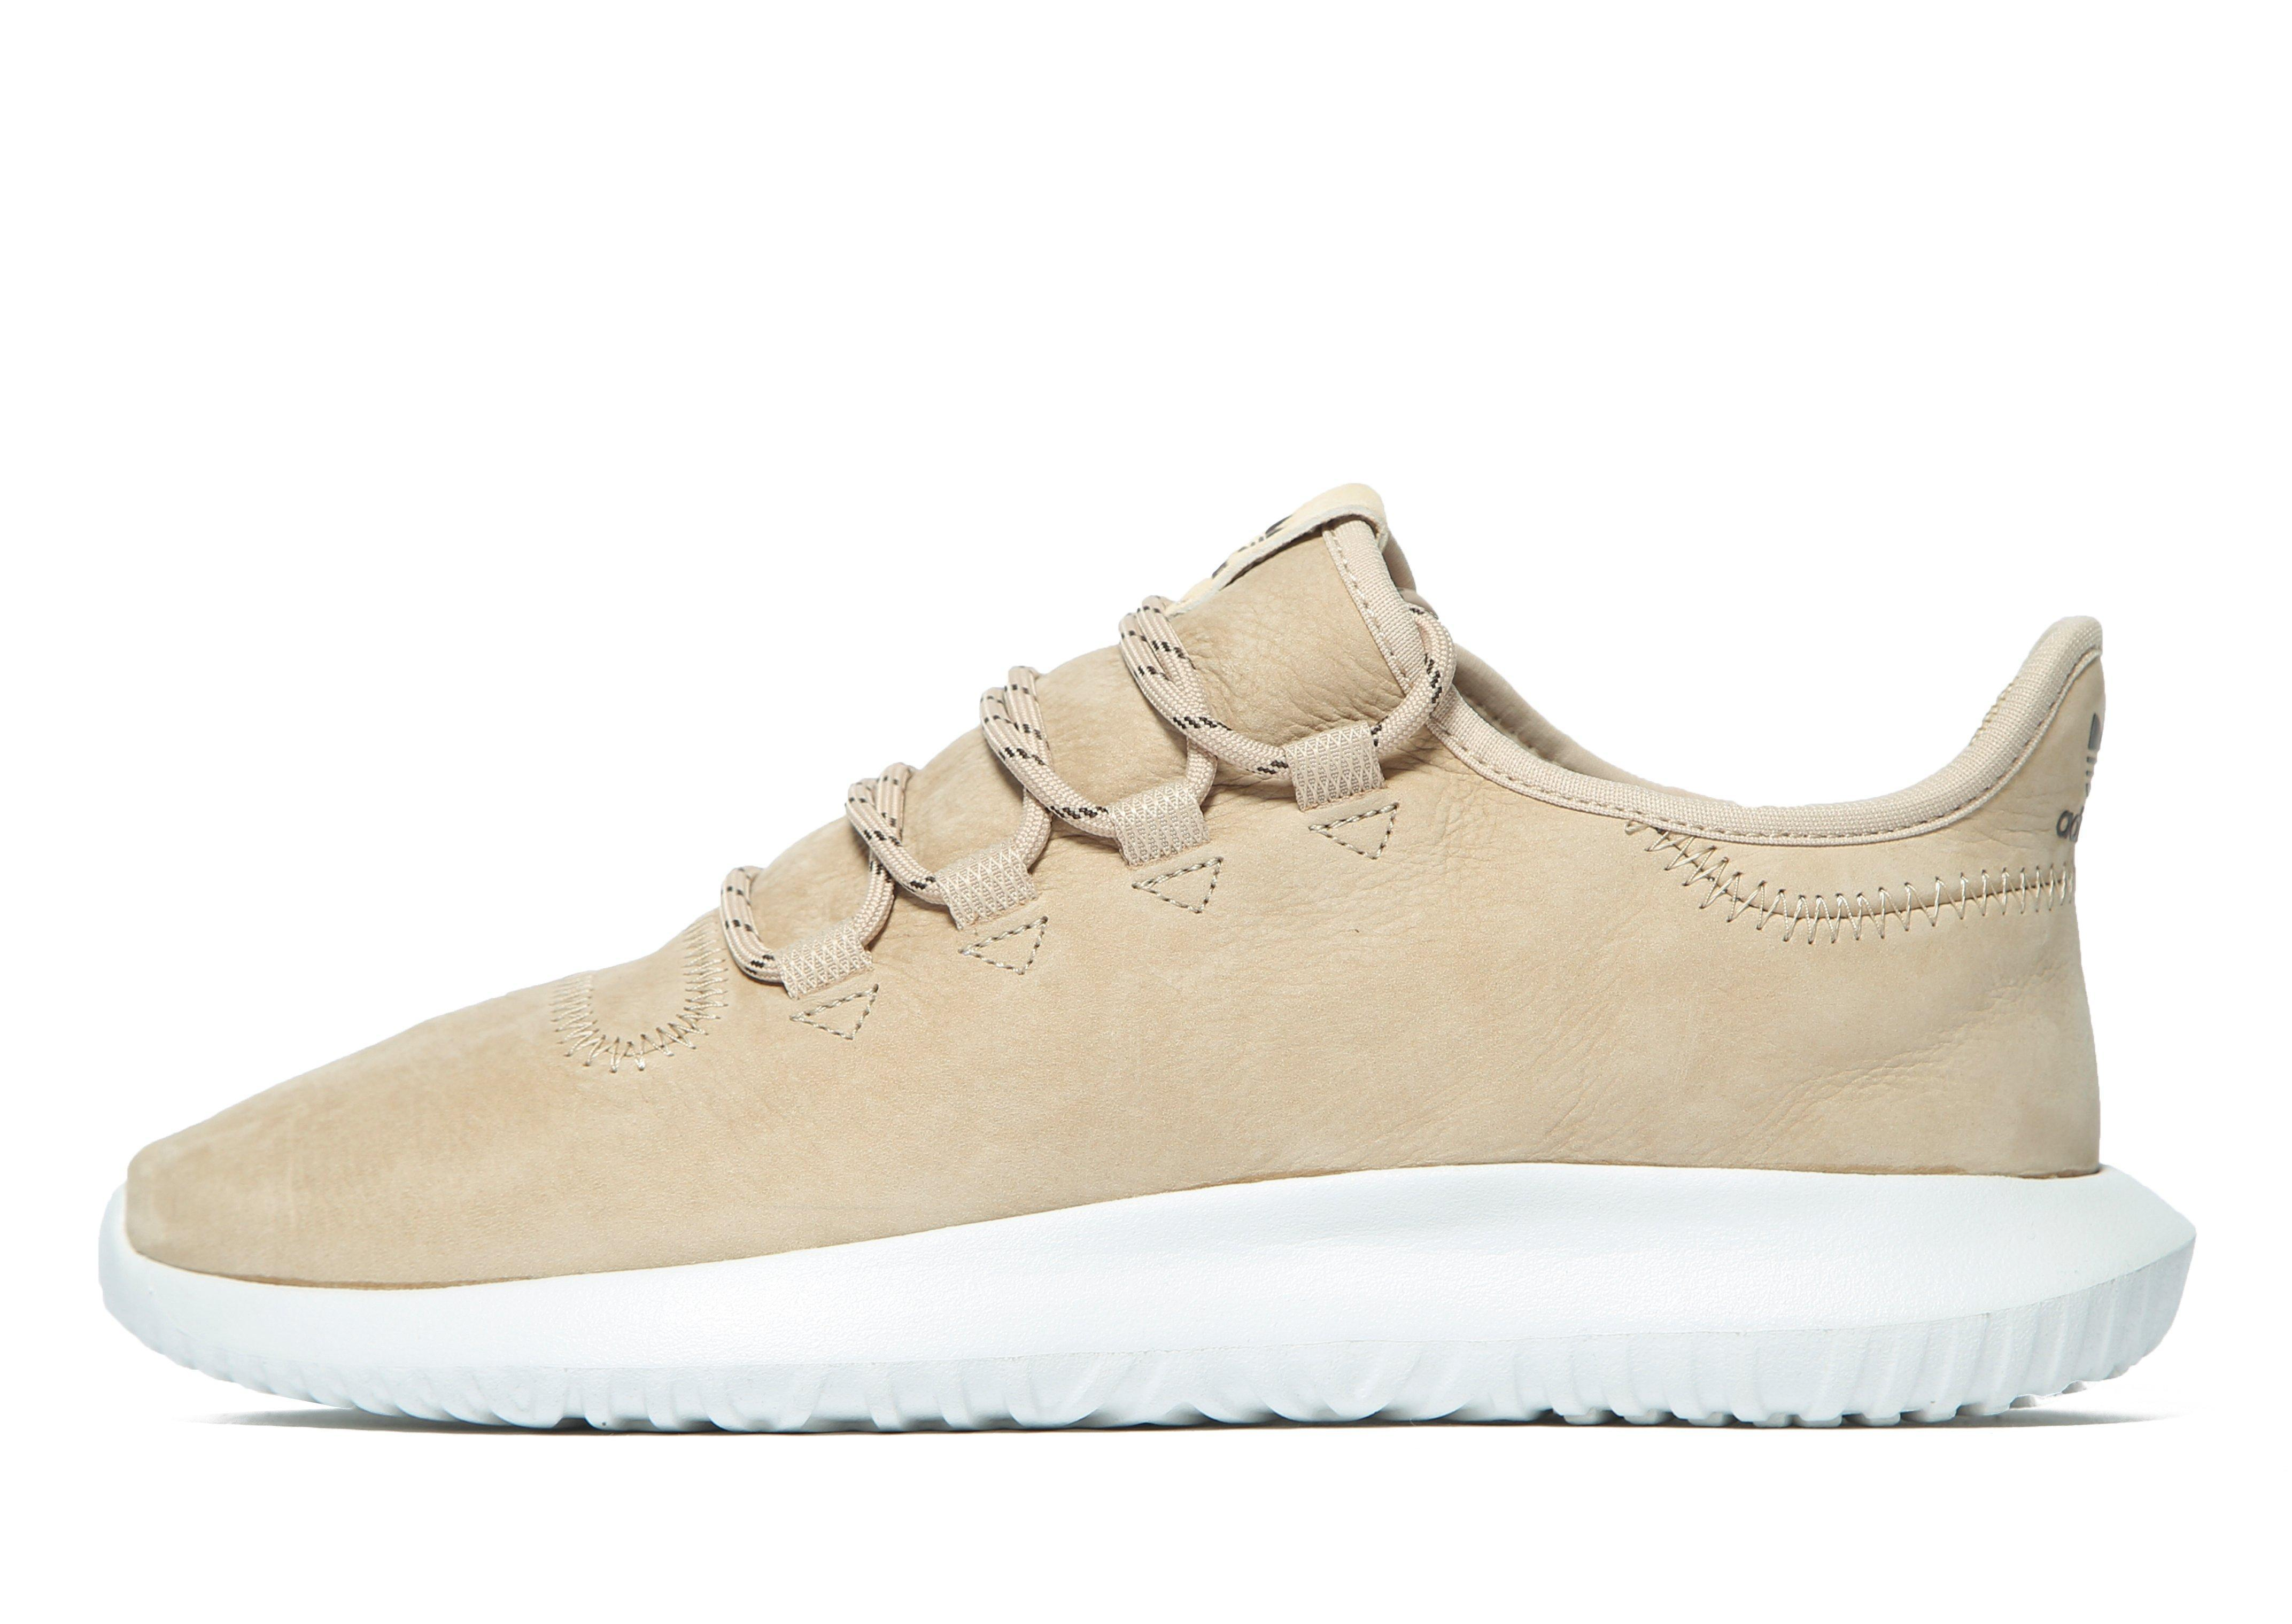 e38cd3bc314 adidas Originals Tubular Shadow Leather in Natural - Lyst